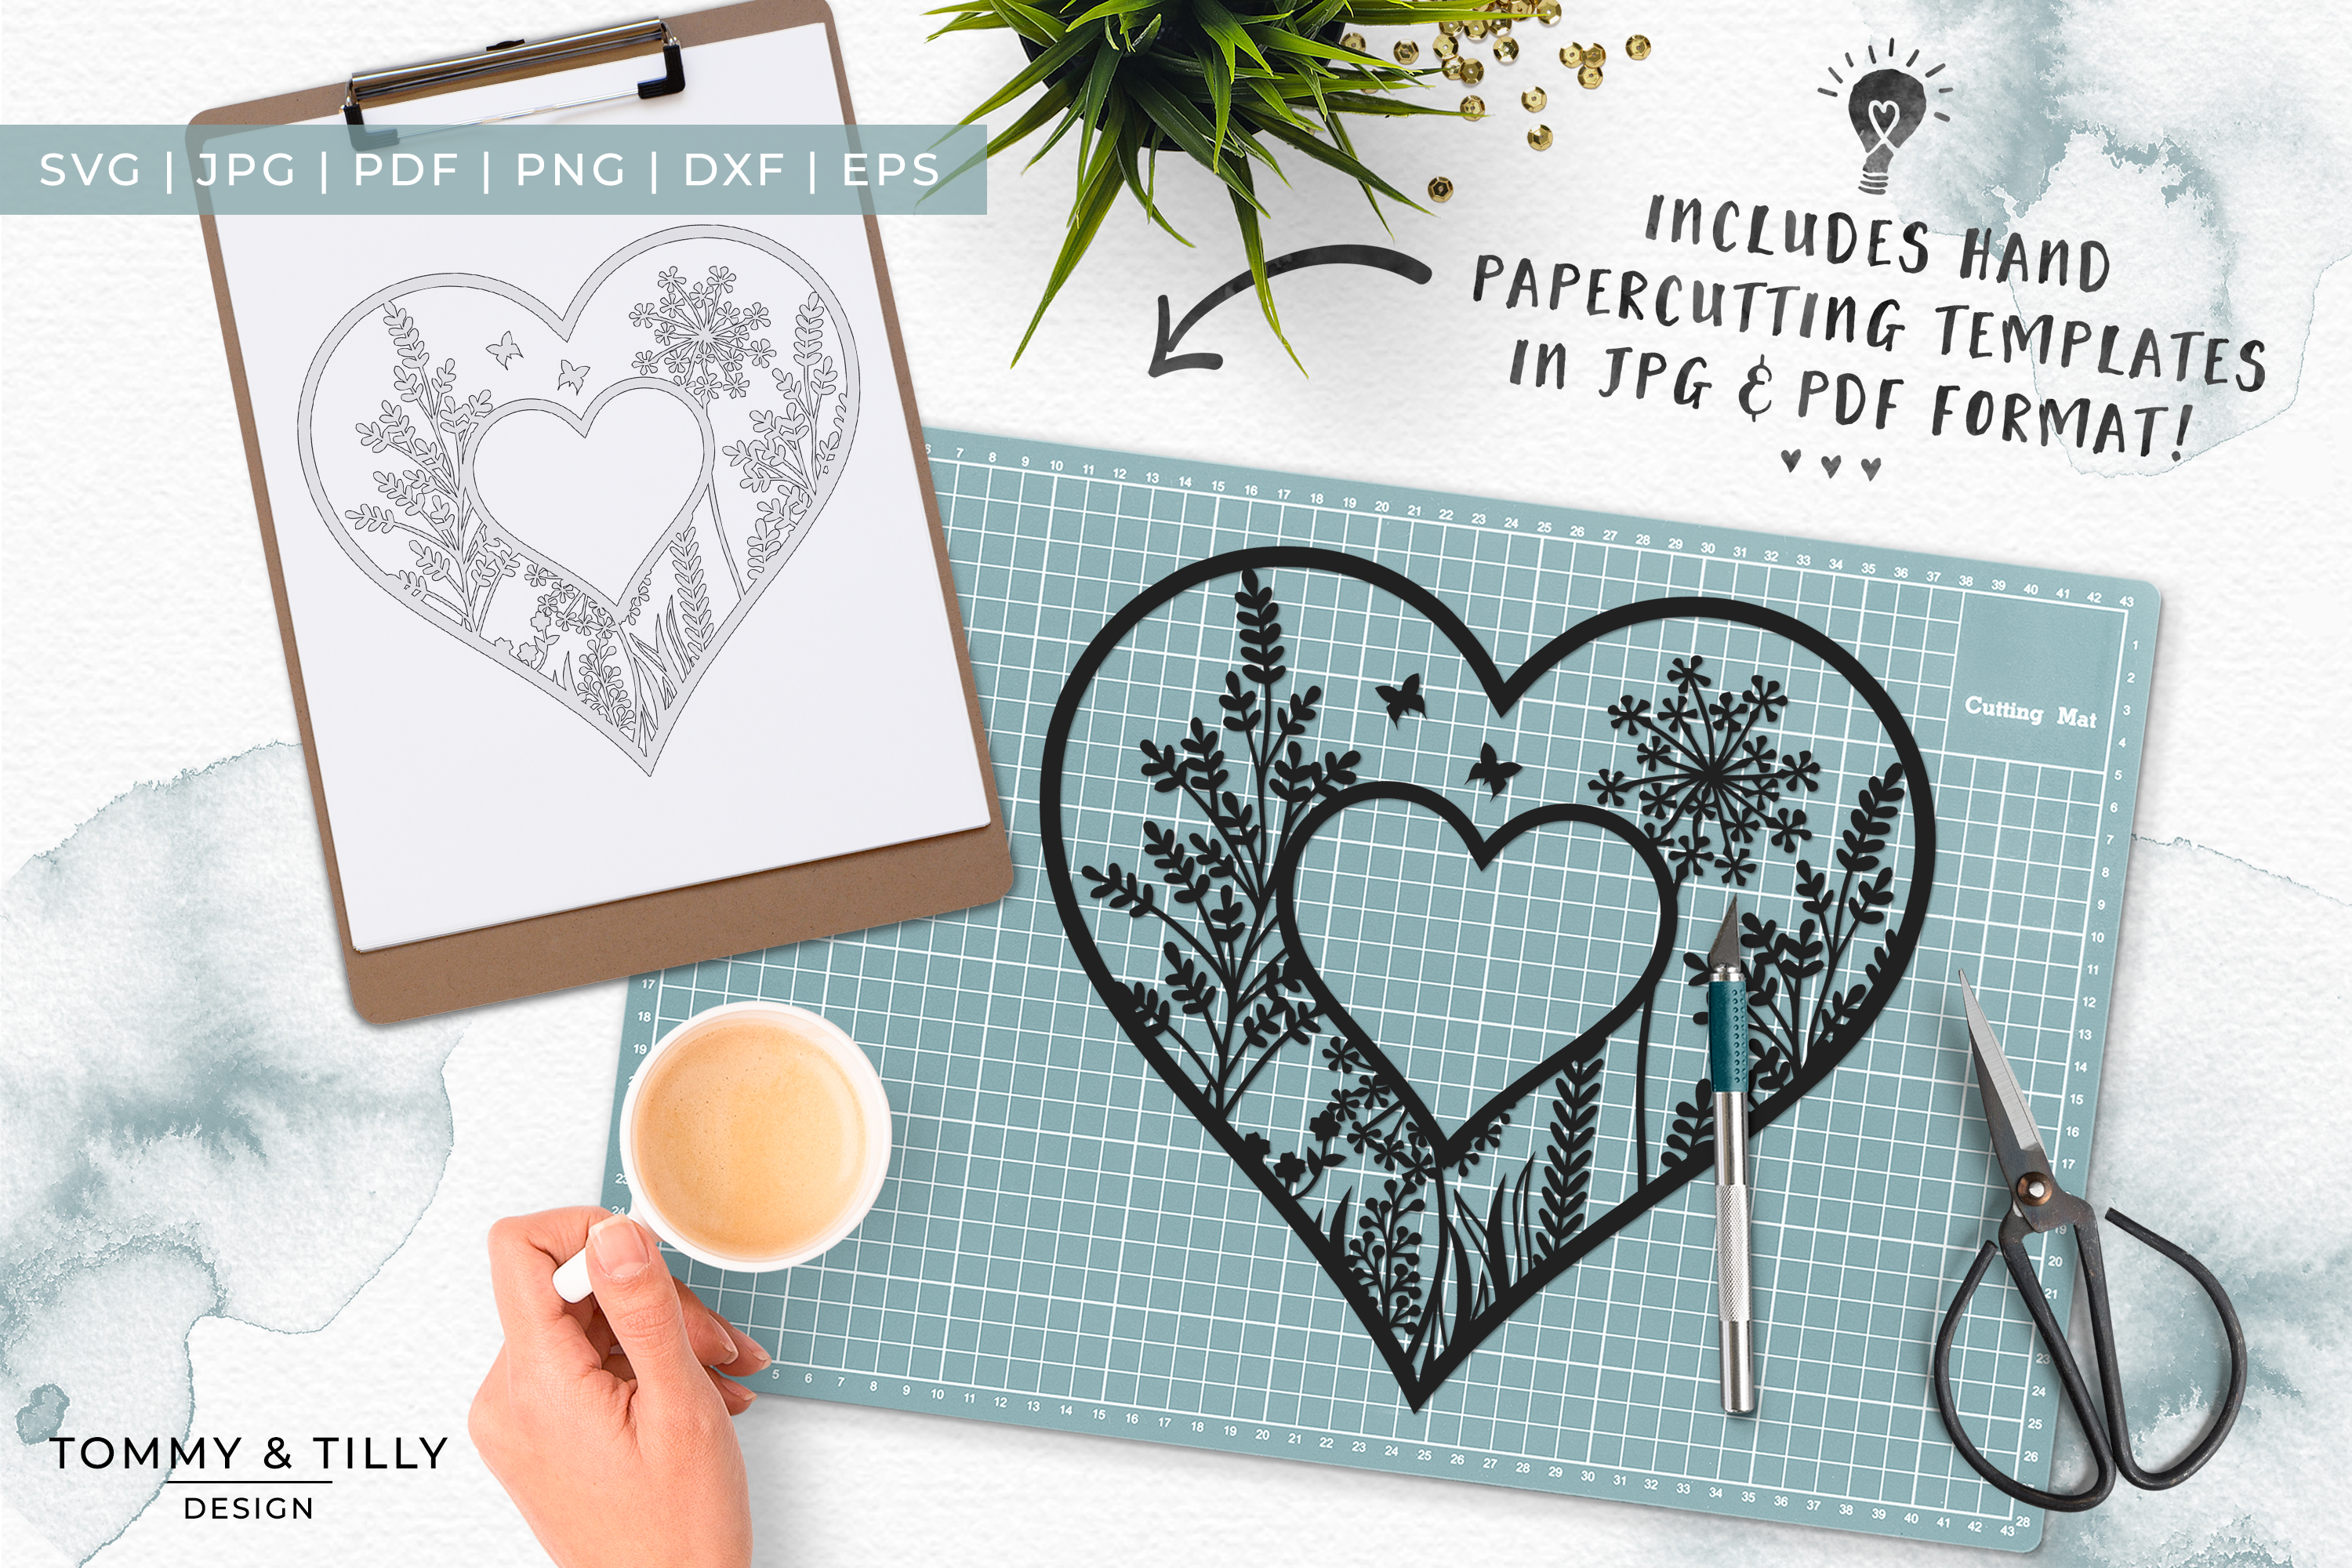 Meadow Heart x 3 - Papercut Template SVG EPS DXF PNG PDF JPG example image 3